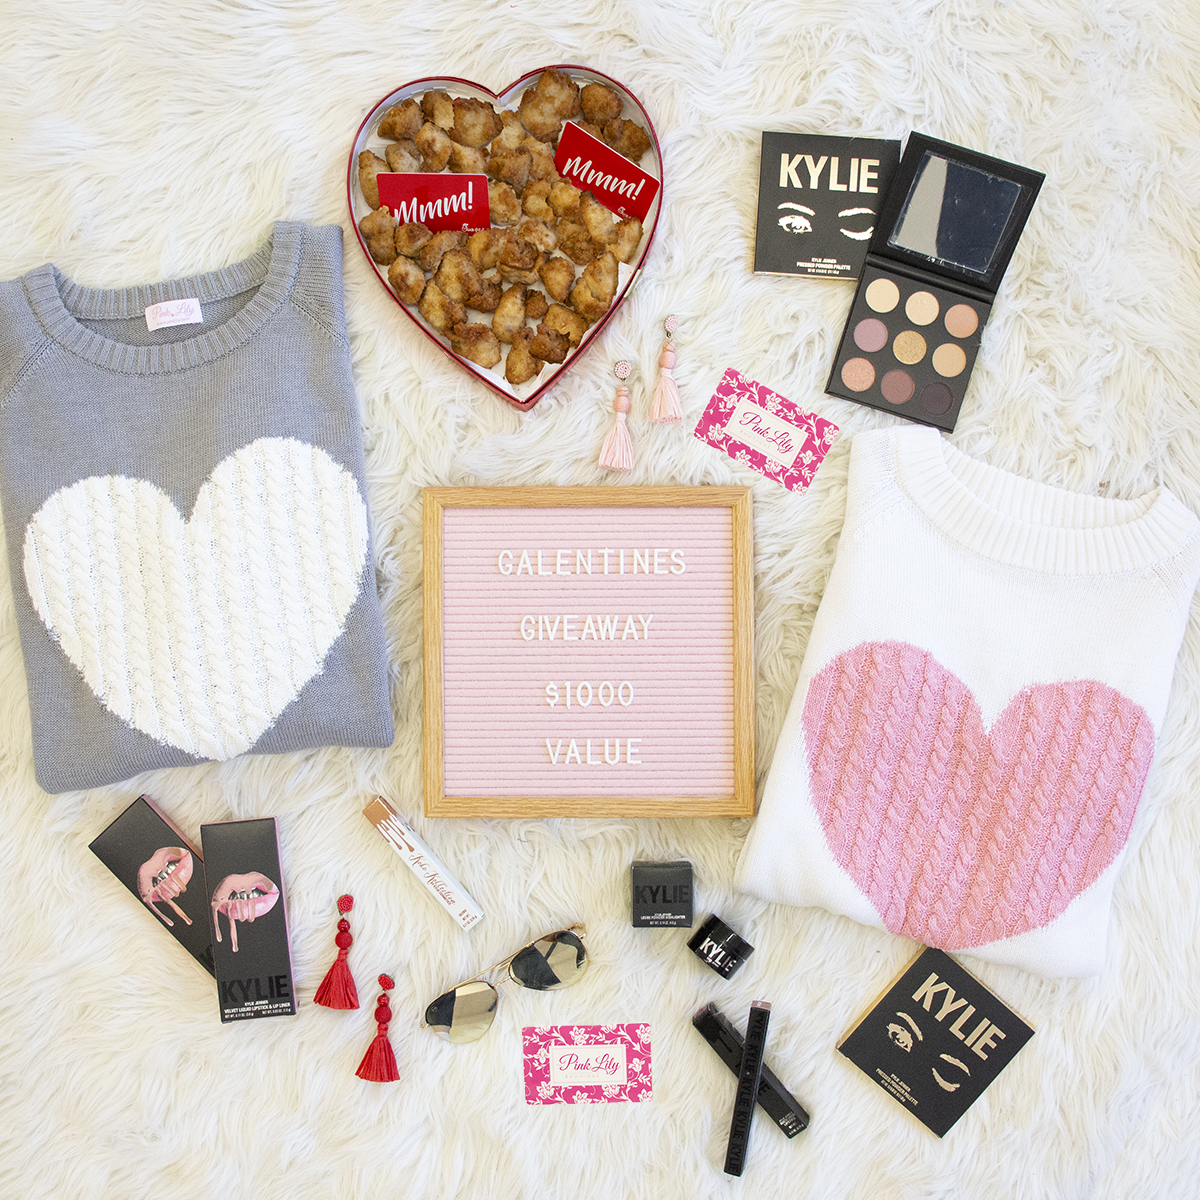 Buy Lily Shoppingpink boutique giveaway picture trends